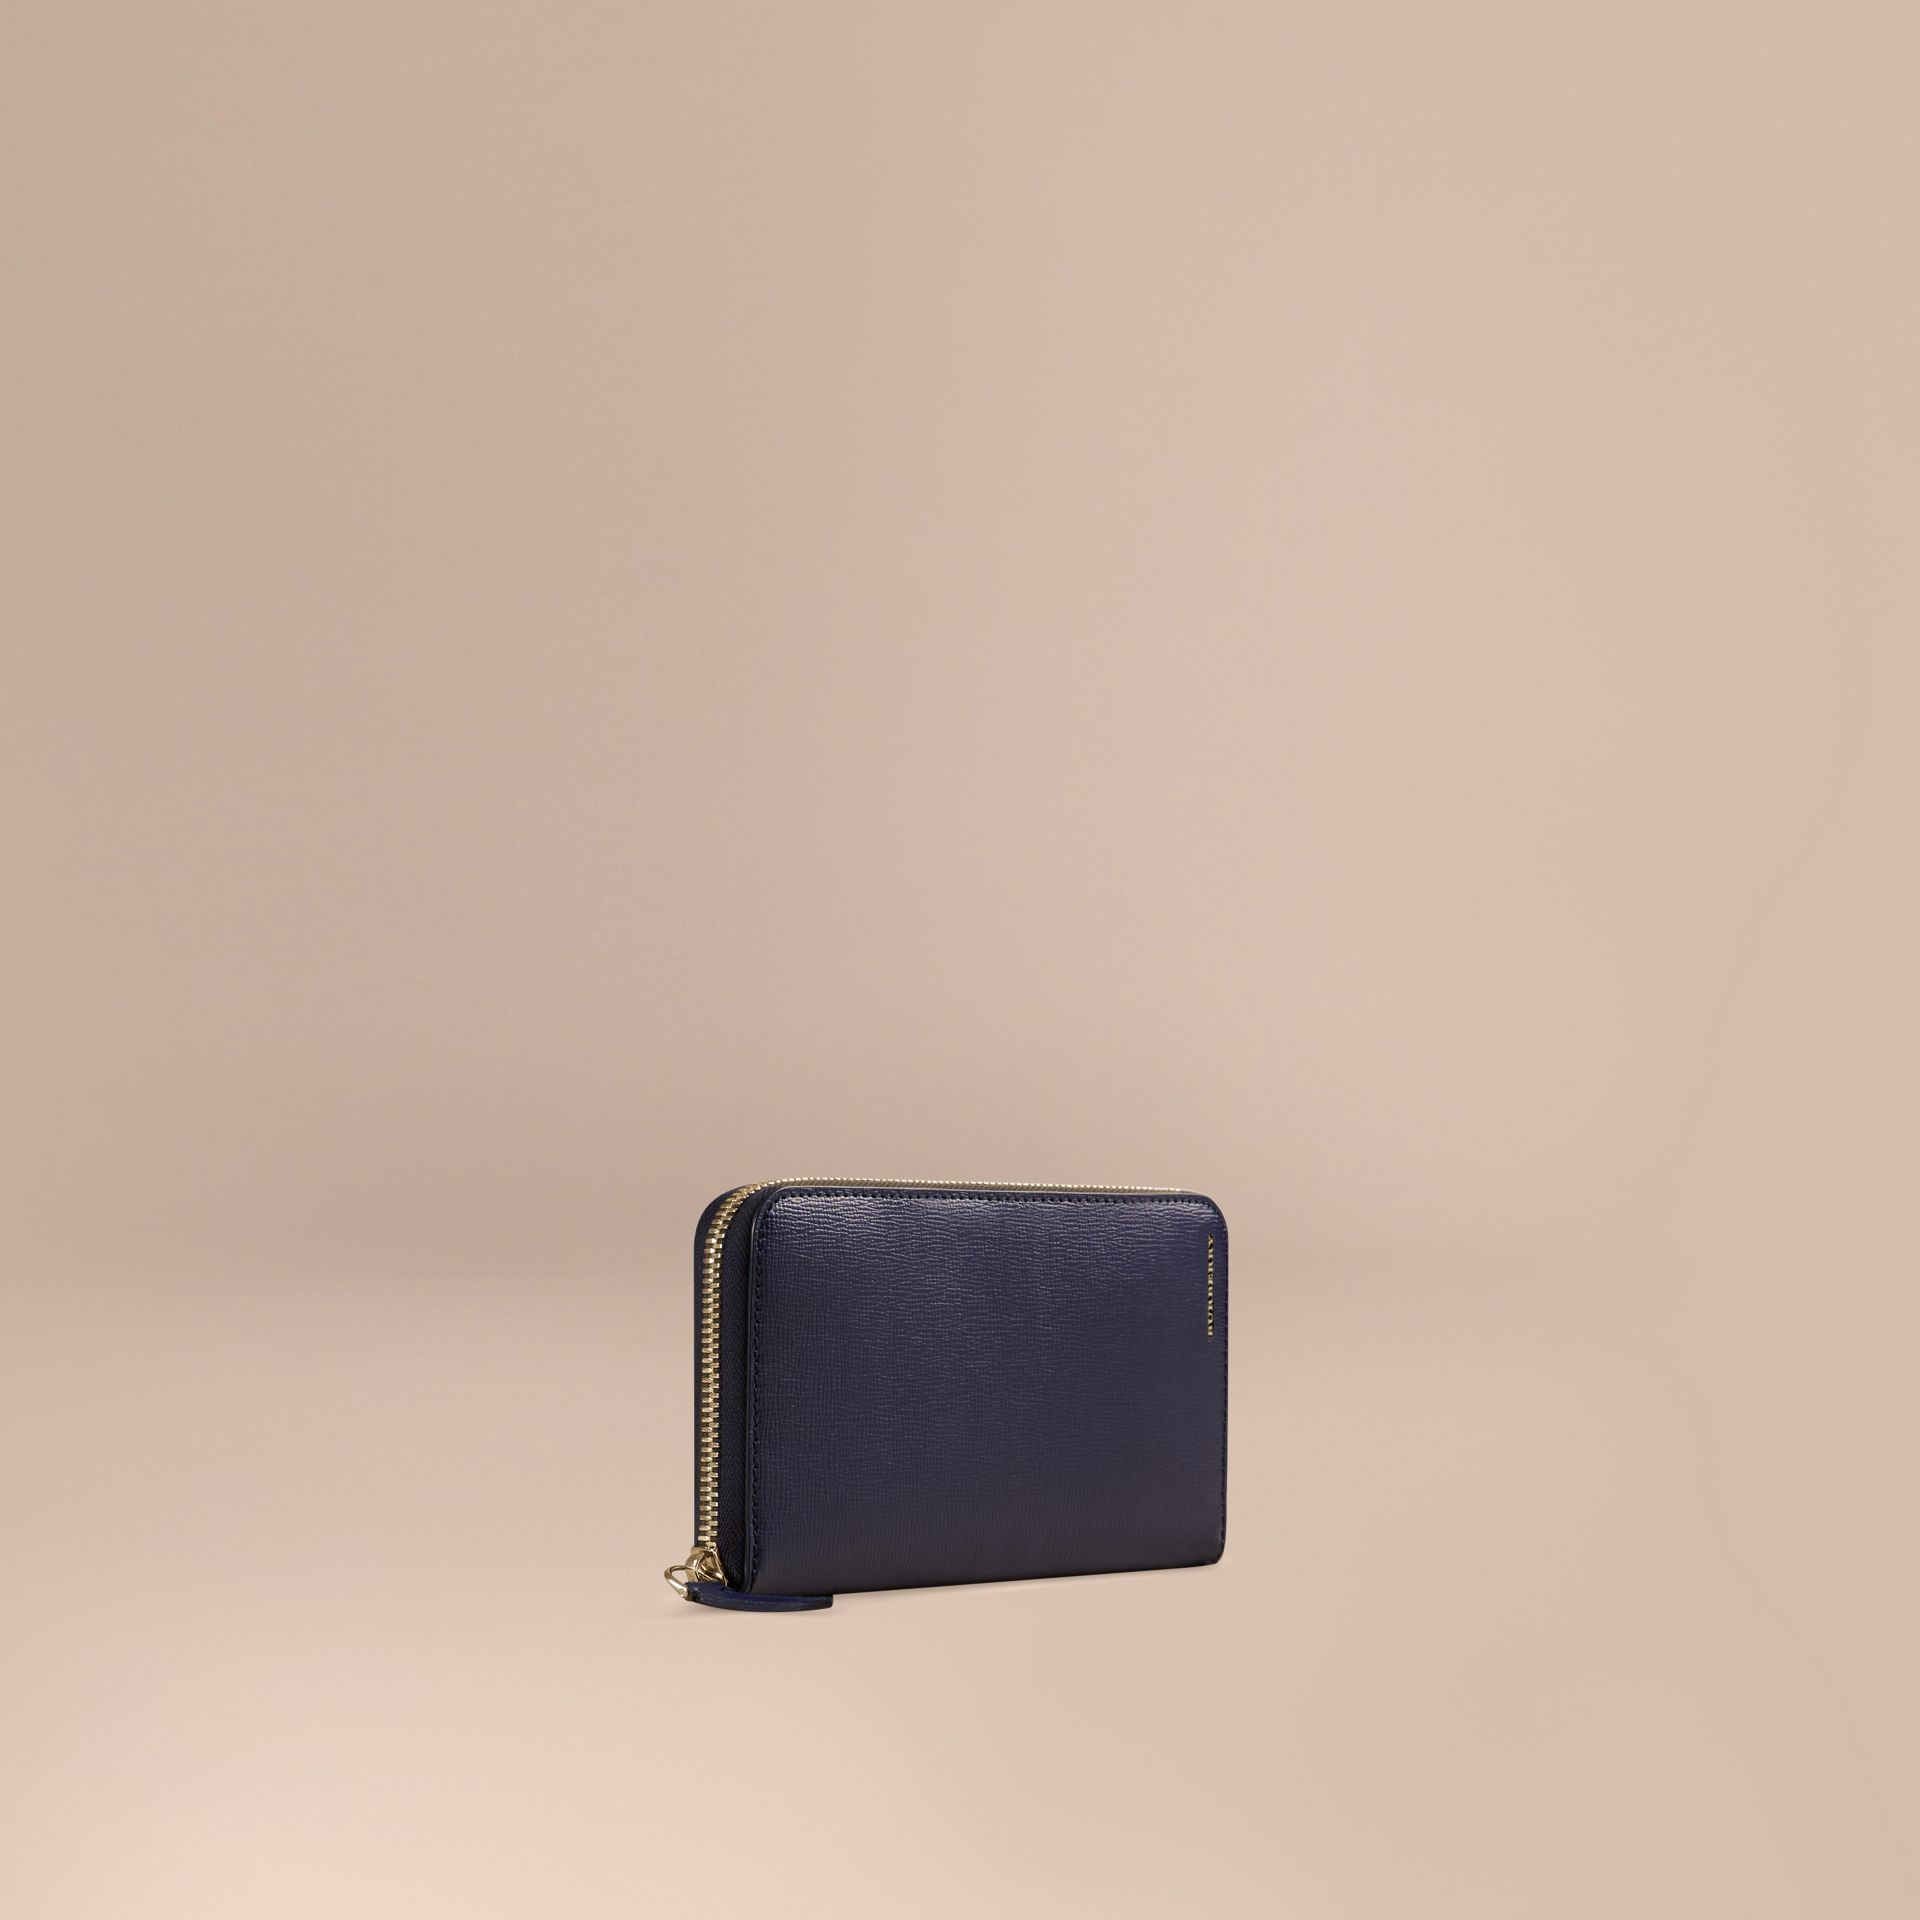 Dark navy London Leather Ziparound Wallet Dark Navy - gallery image 1